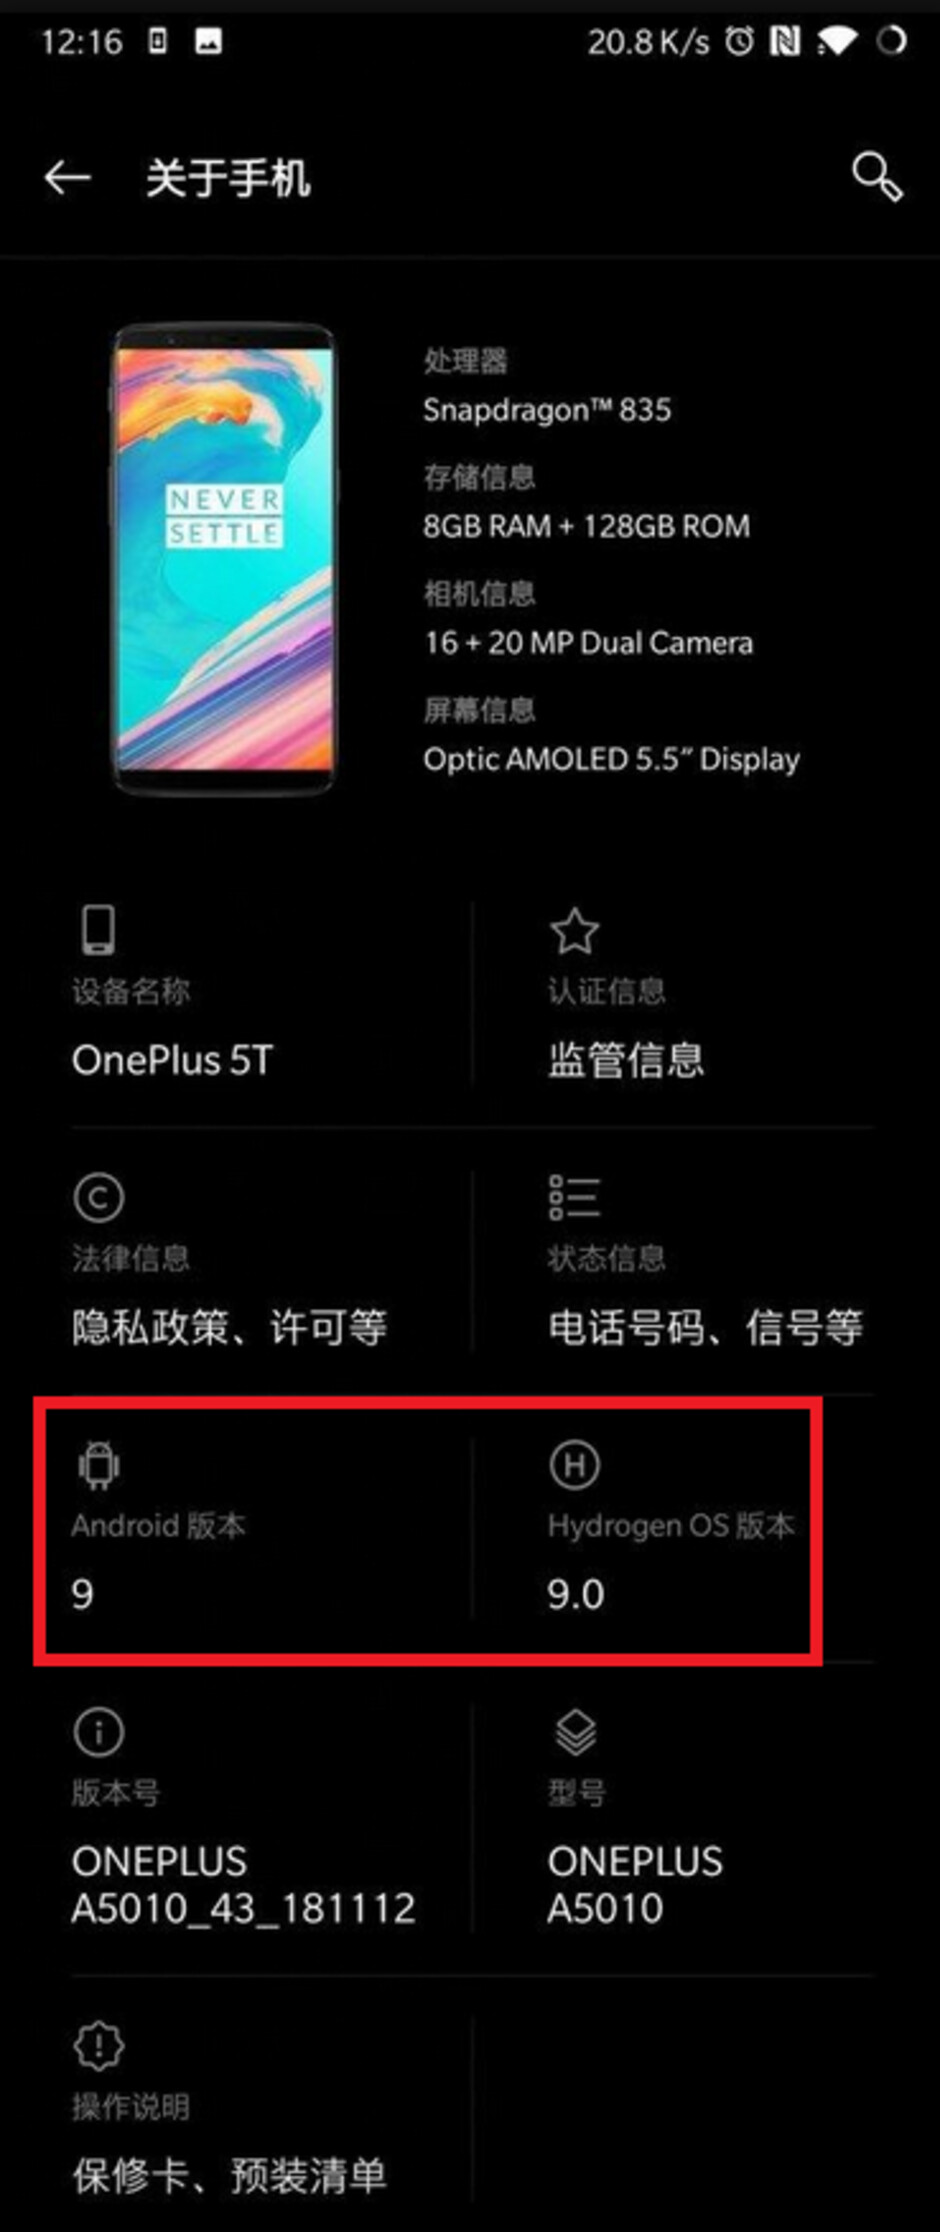 The closed beta version of HydrogenOS containing Android 9 for the OnePlus 5T has leaked - Closed beta of HydrogenOS leaks, containing Android 9 for the OnePlus 5T